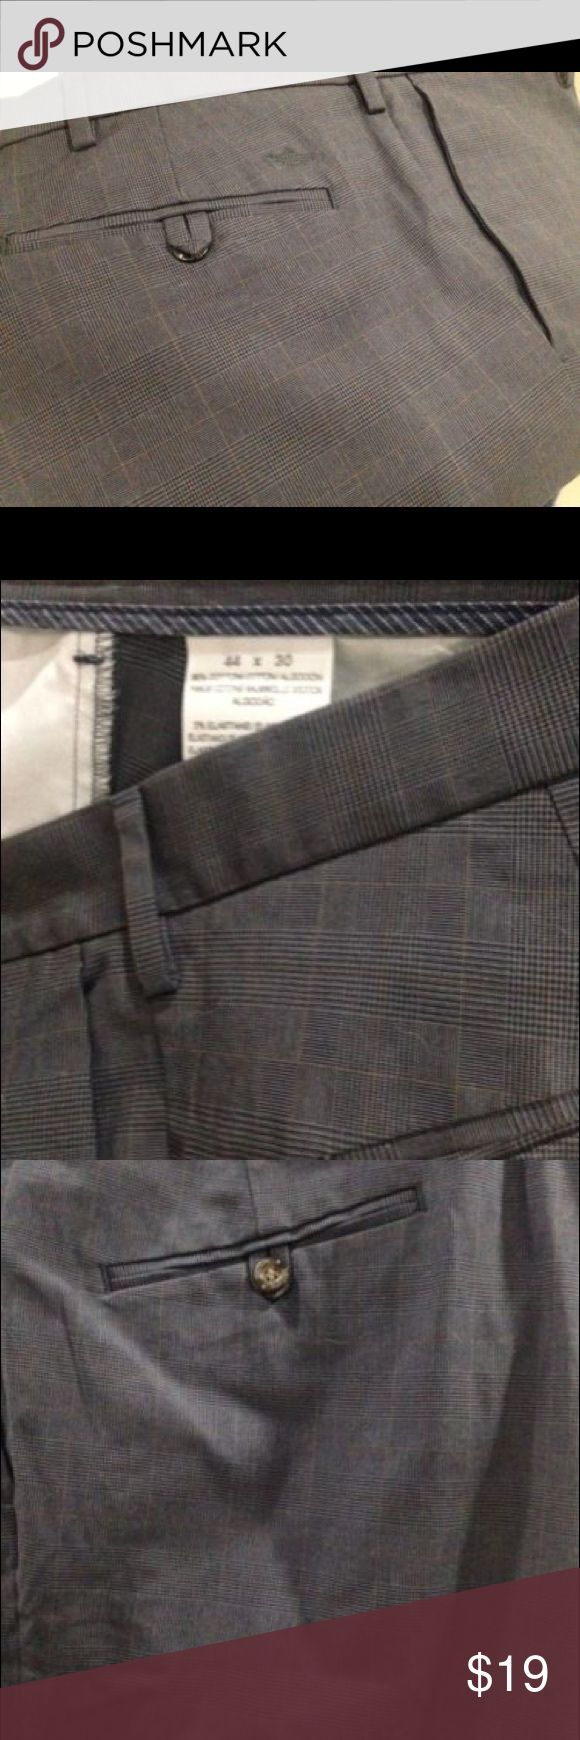 Docker's Men's Gray Patterned Pants, Size 44x40 Preowned Patterened Docker's Mens Pants - Size 44x40. Color is Gray/Charcoal with a stripped pattern - view pictures. Dockers Pants Dress